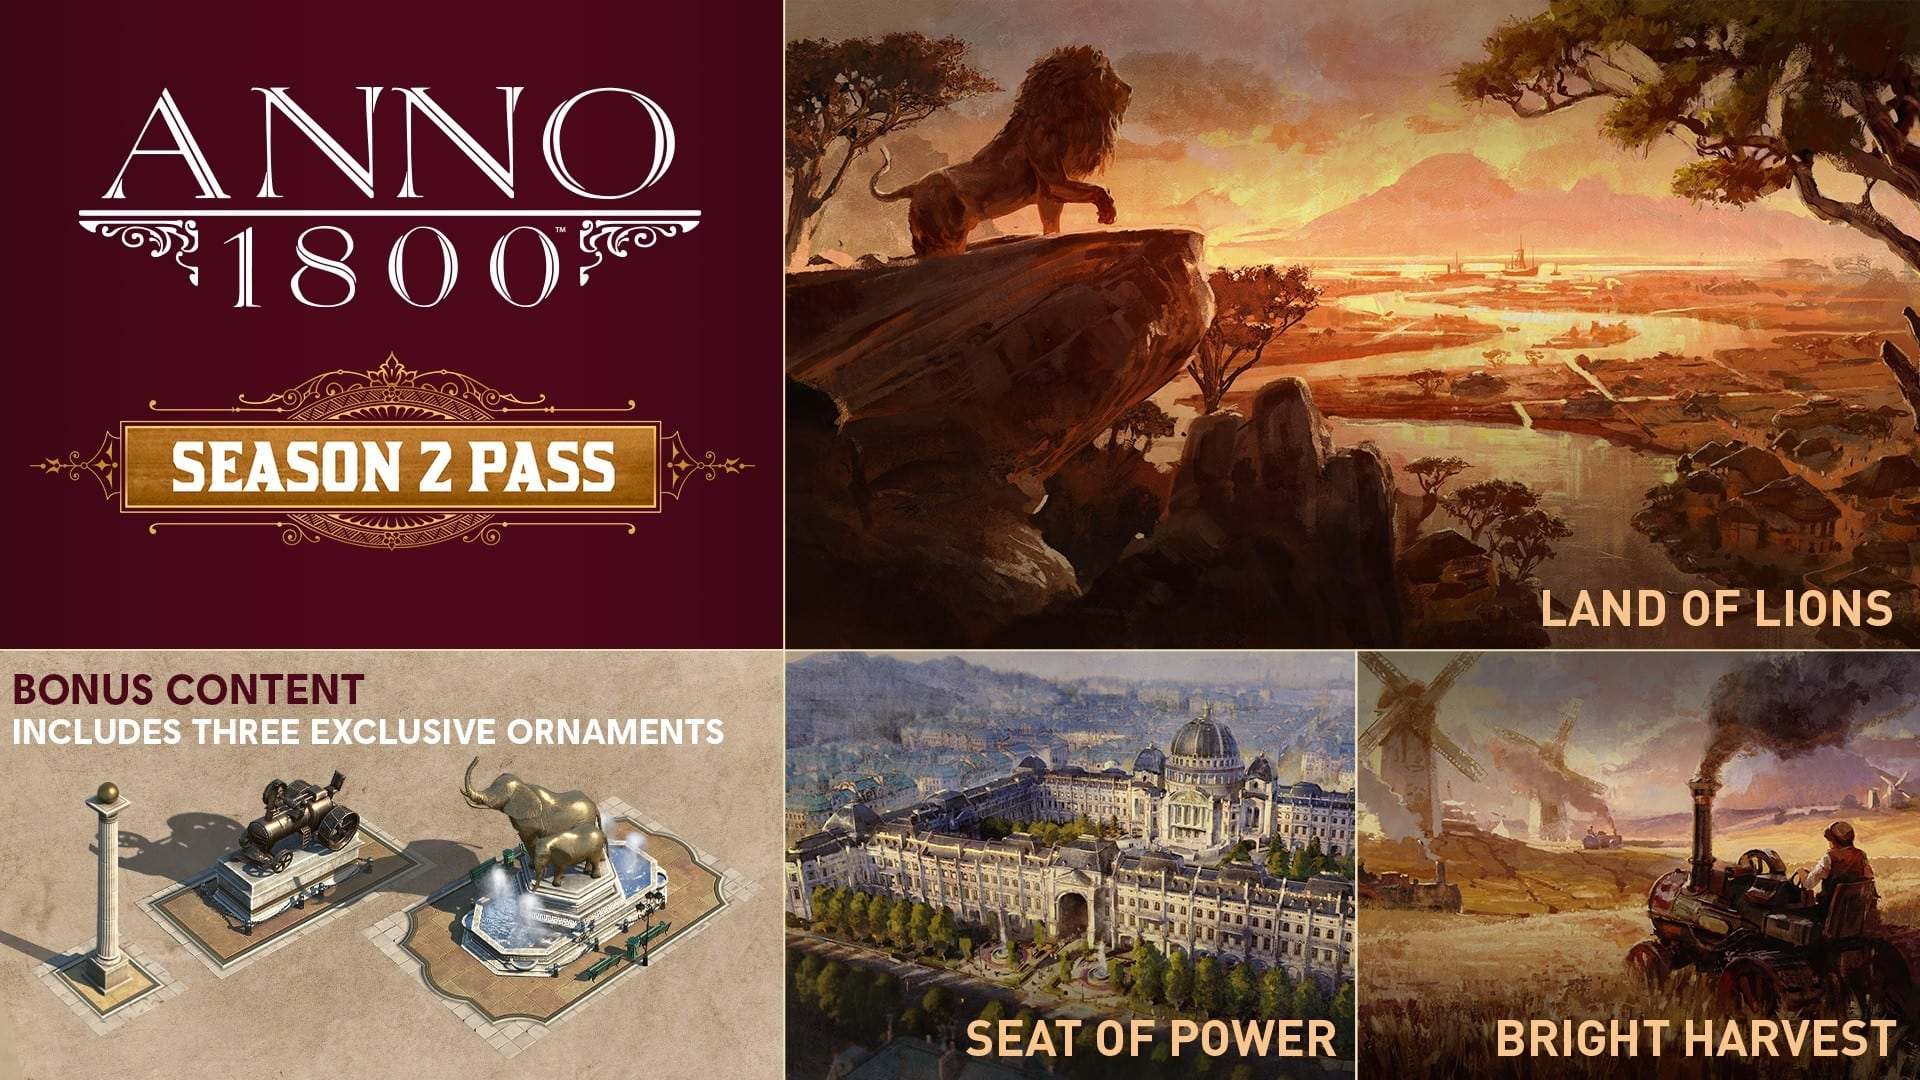 Ubisoft Announces The Season 2 Pass For ANNO 1800 With The First DLC Releasing On March 24